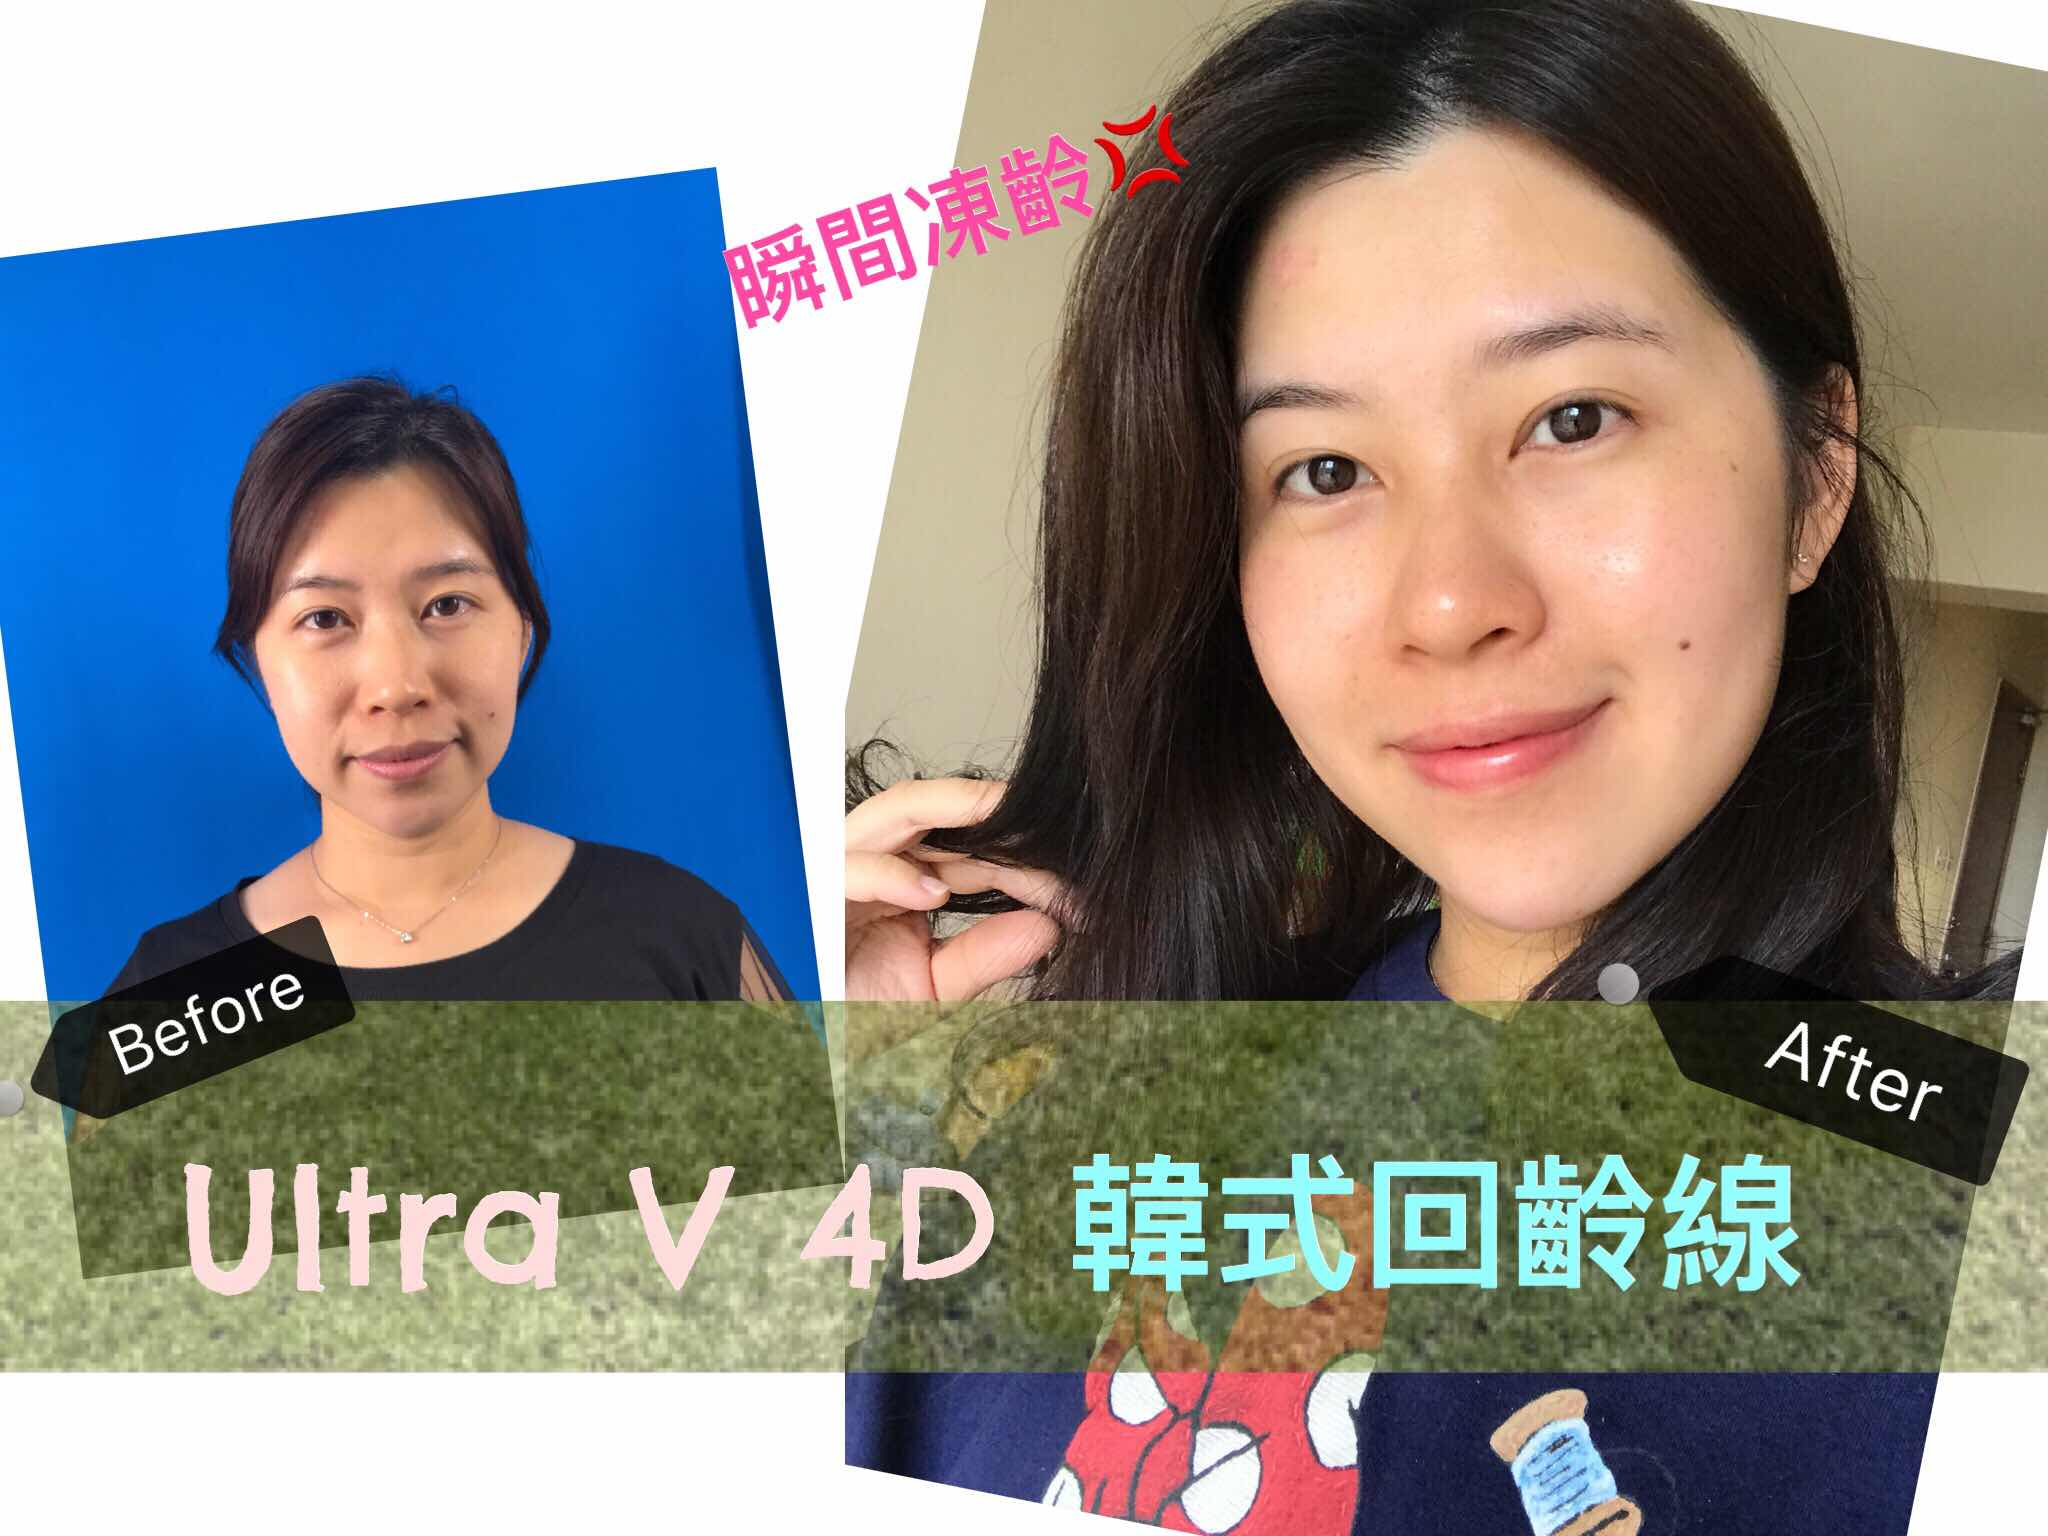 033ed169cc Beauty - Beauty Center 瘦身 美容中心- theZtyle.com